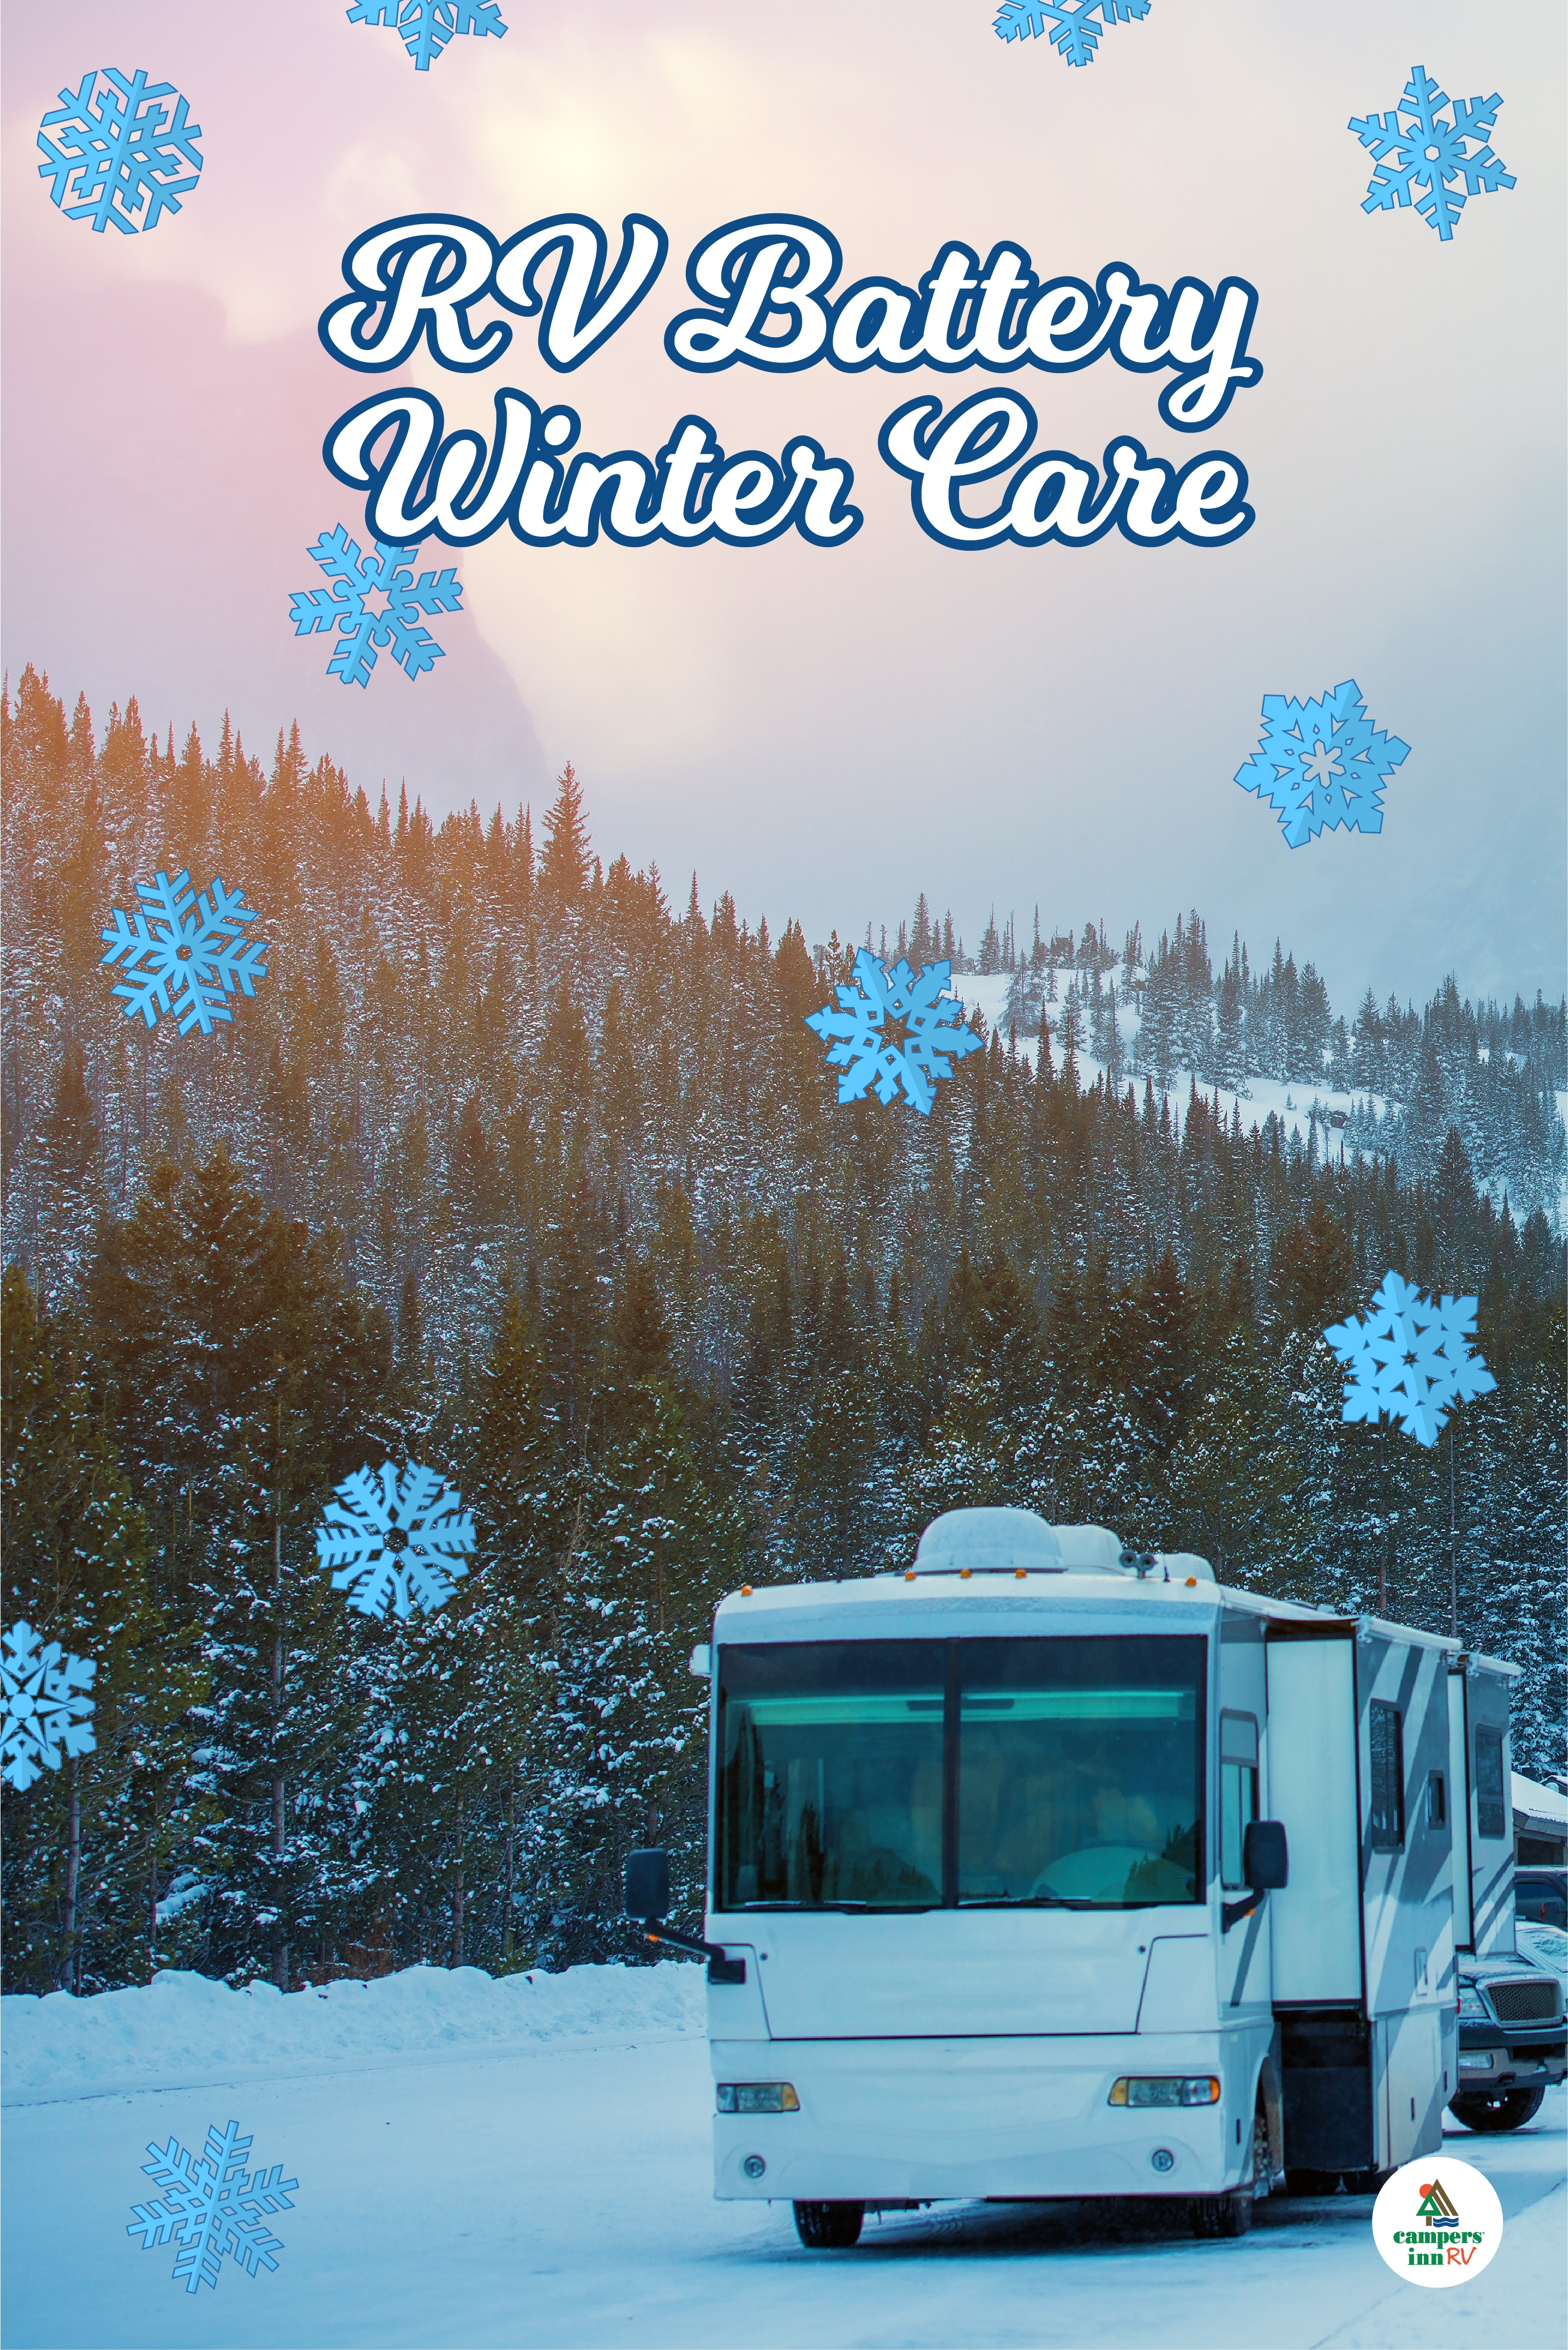 20181023_CI_Pinterest_and_IG_stories_covers RV Battery Winter Care